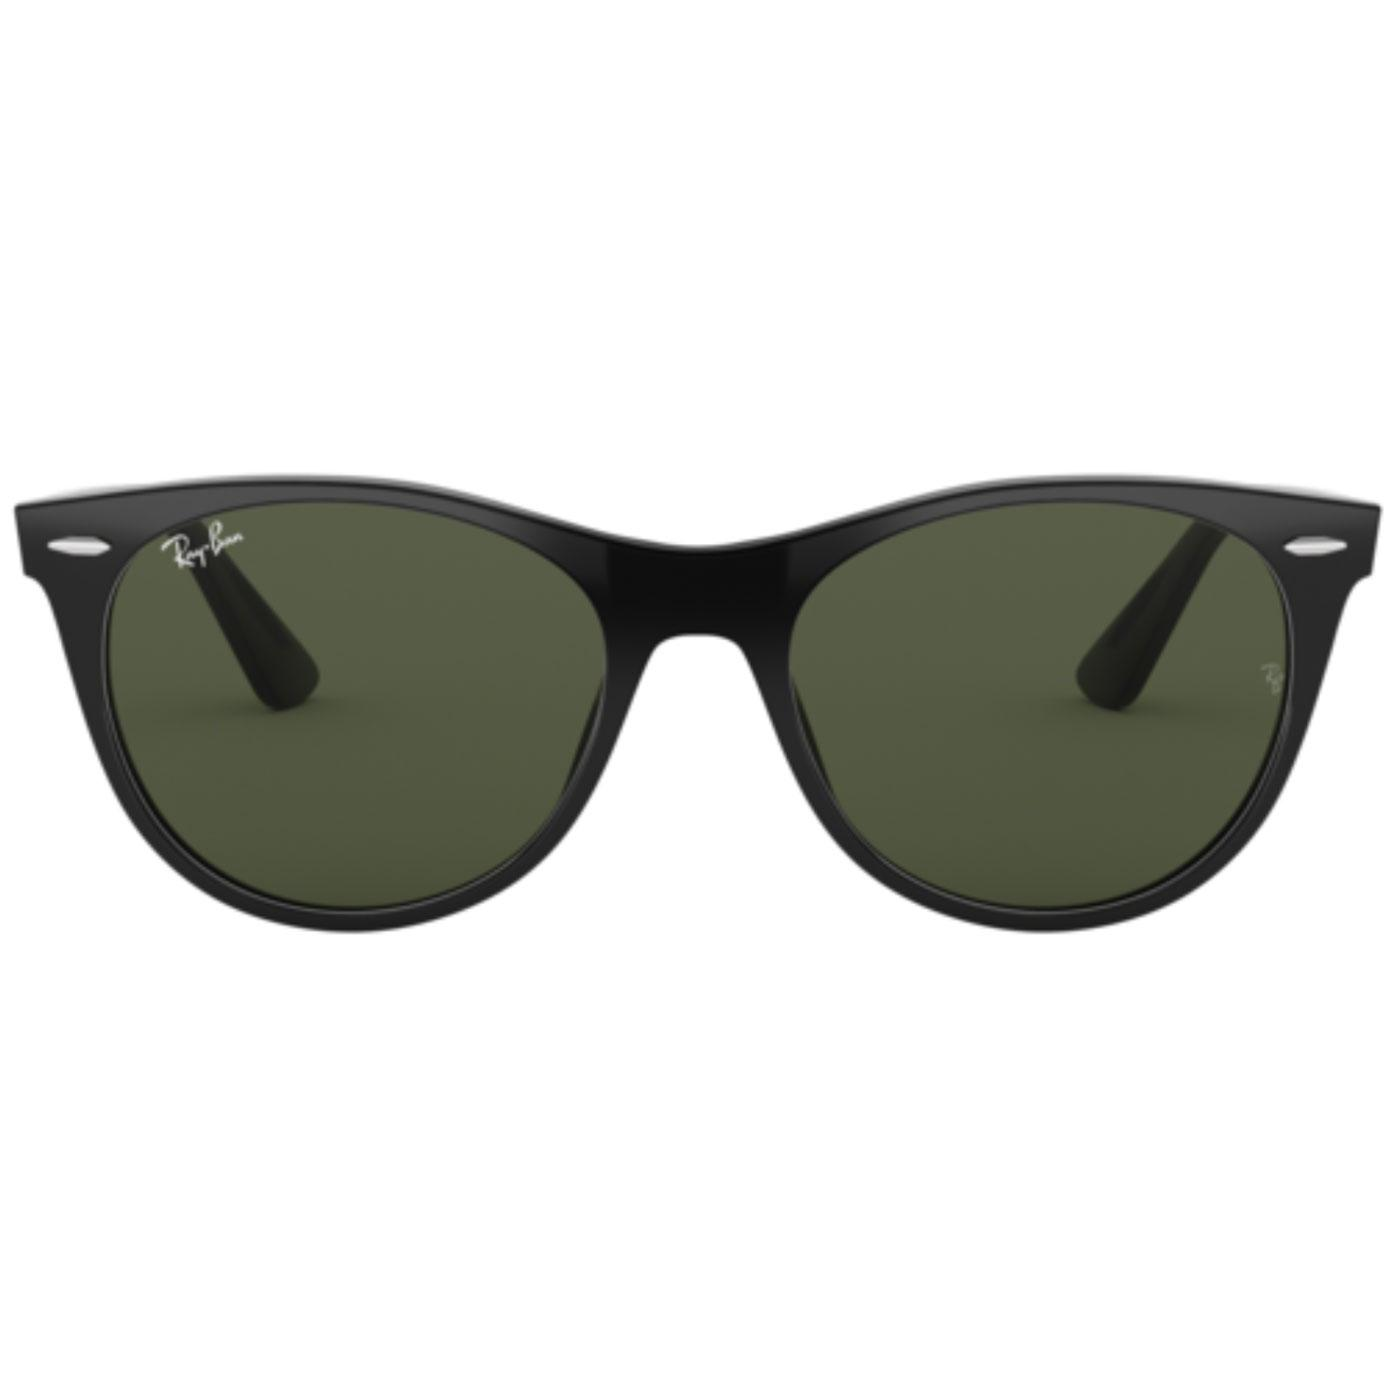 Wayfarer II RAY-BAN Retro Rounded Sunglasses Black